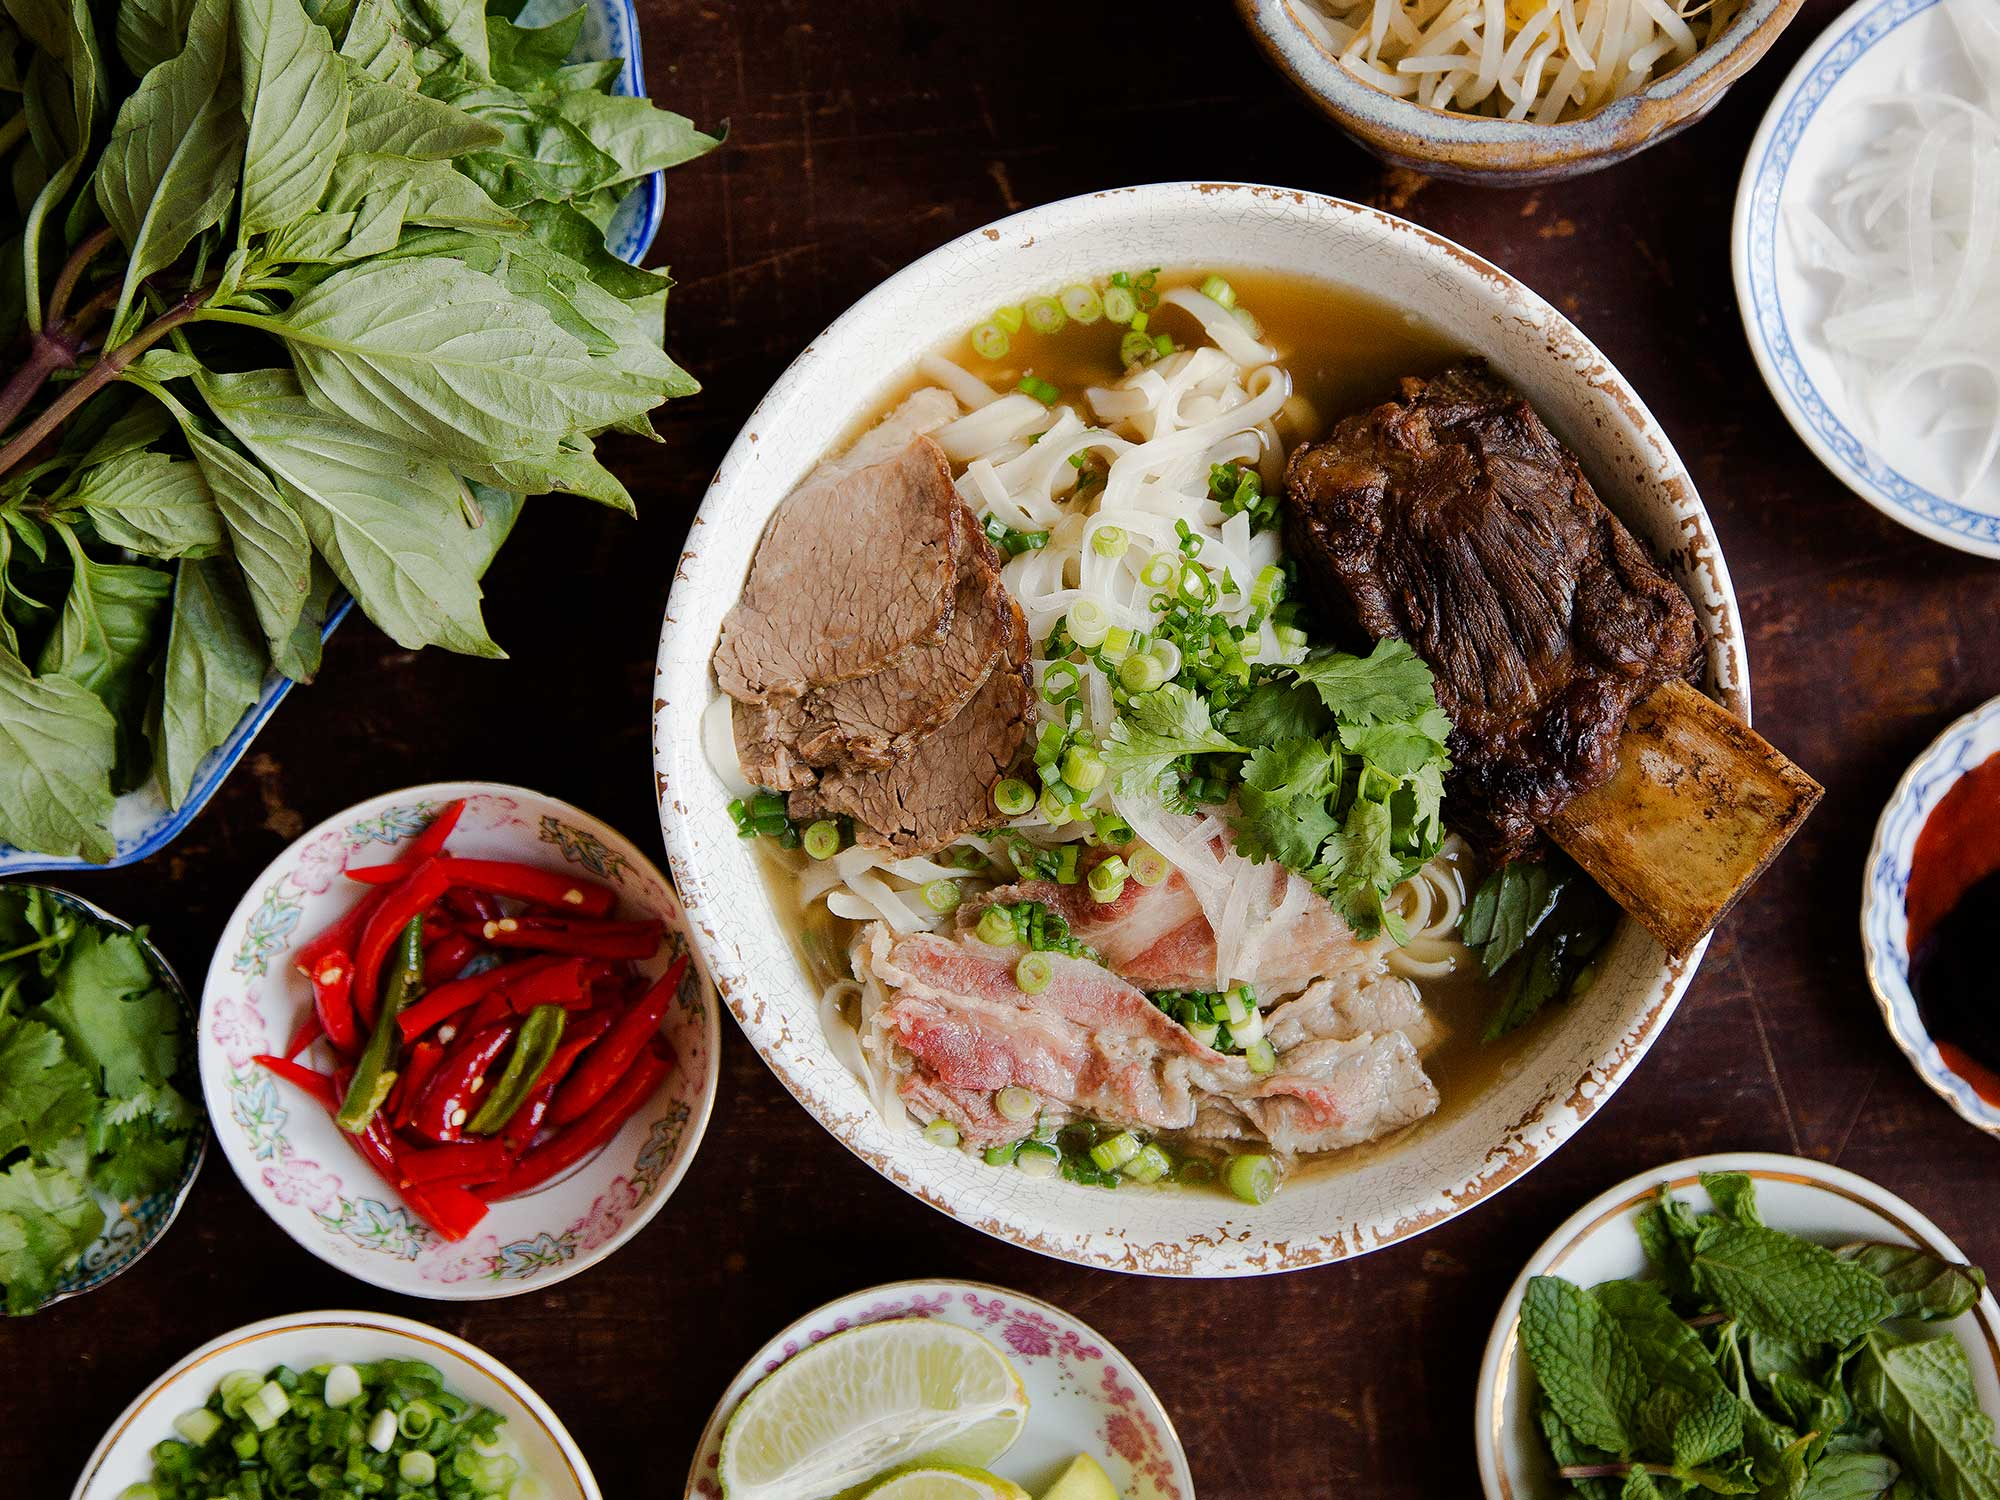 The Best Pho in NYC Comes With an Unusual Add-In